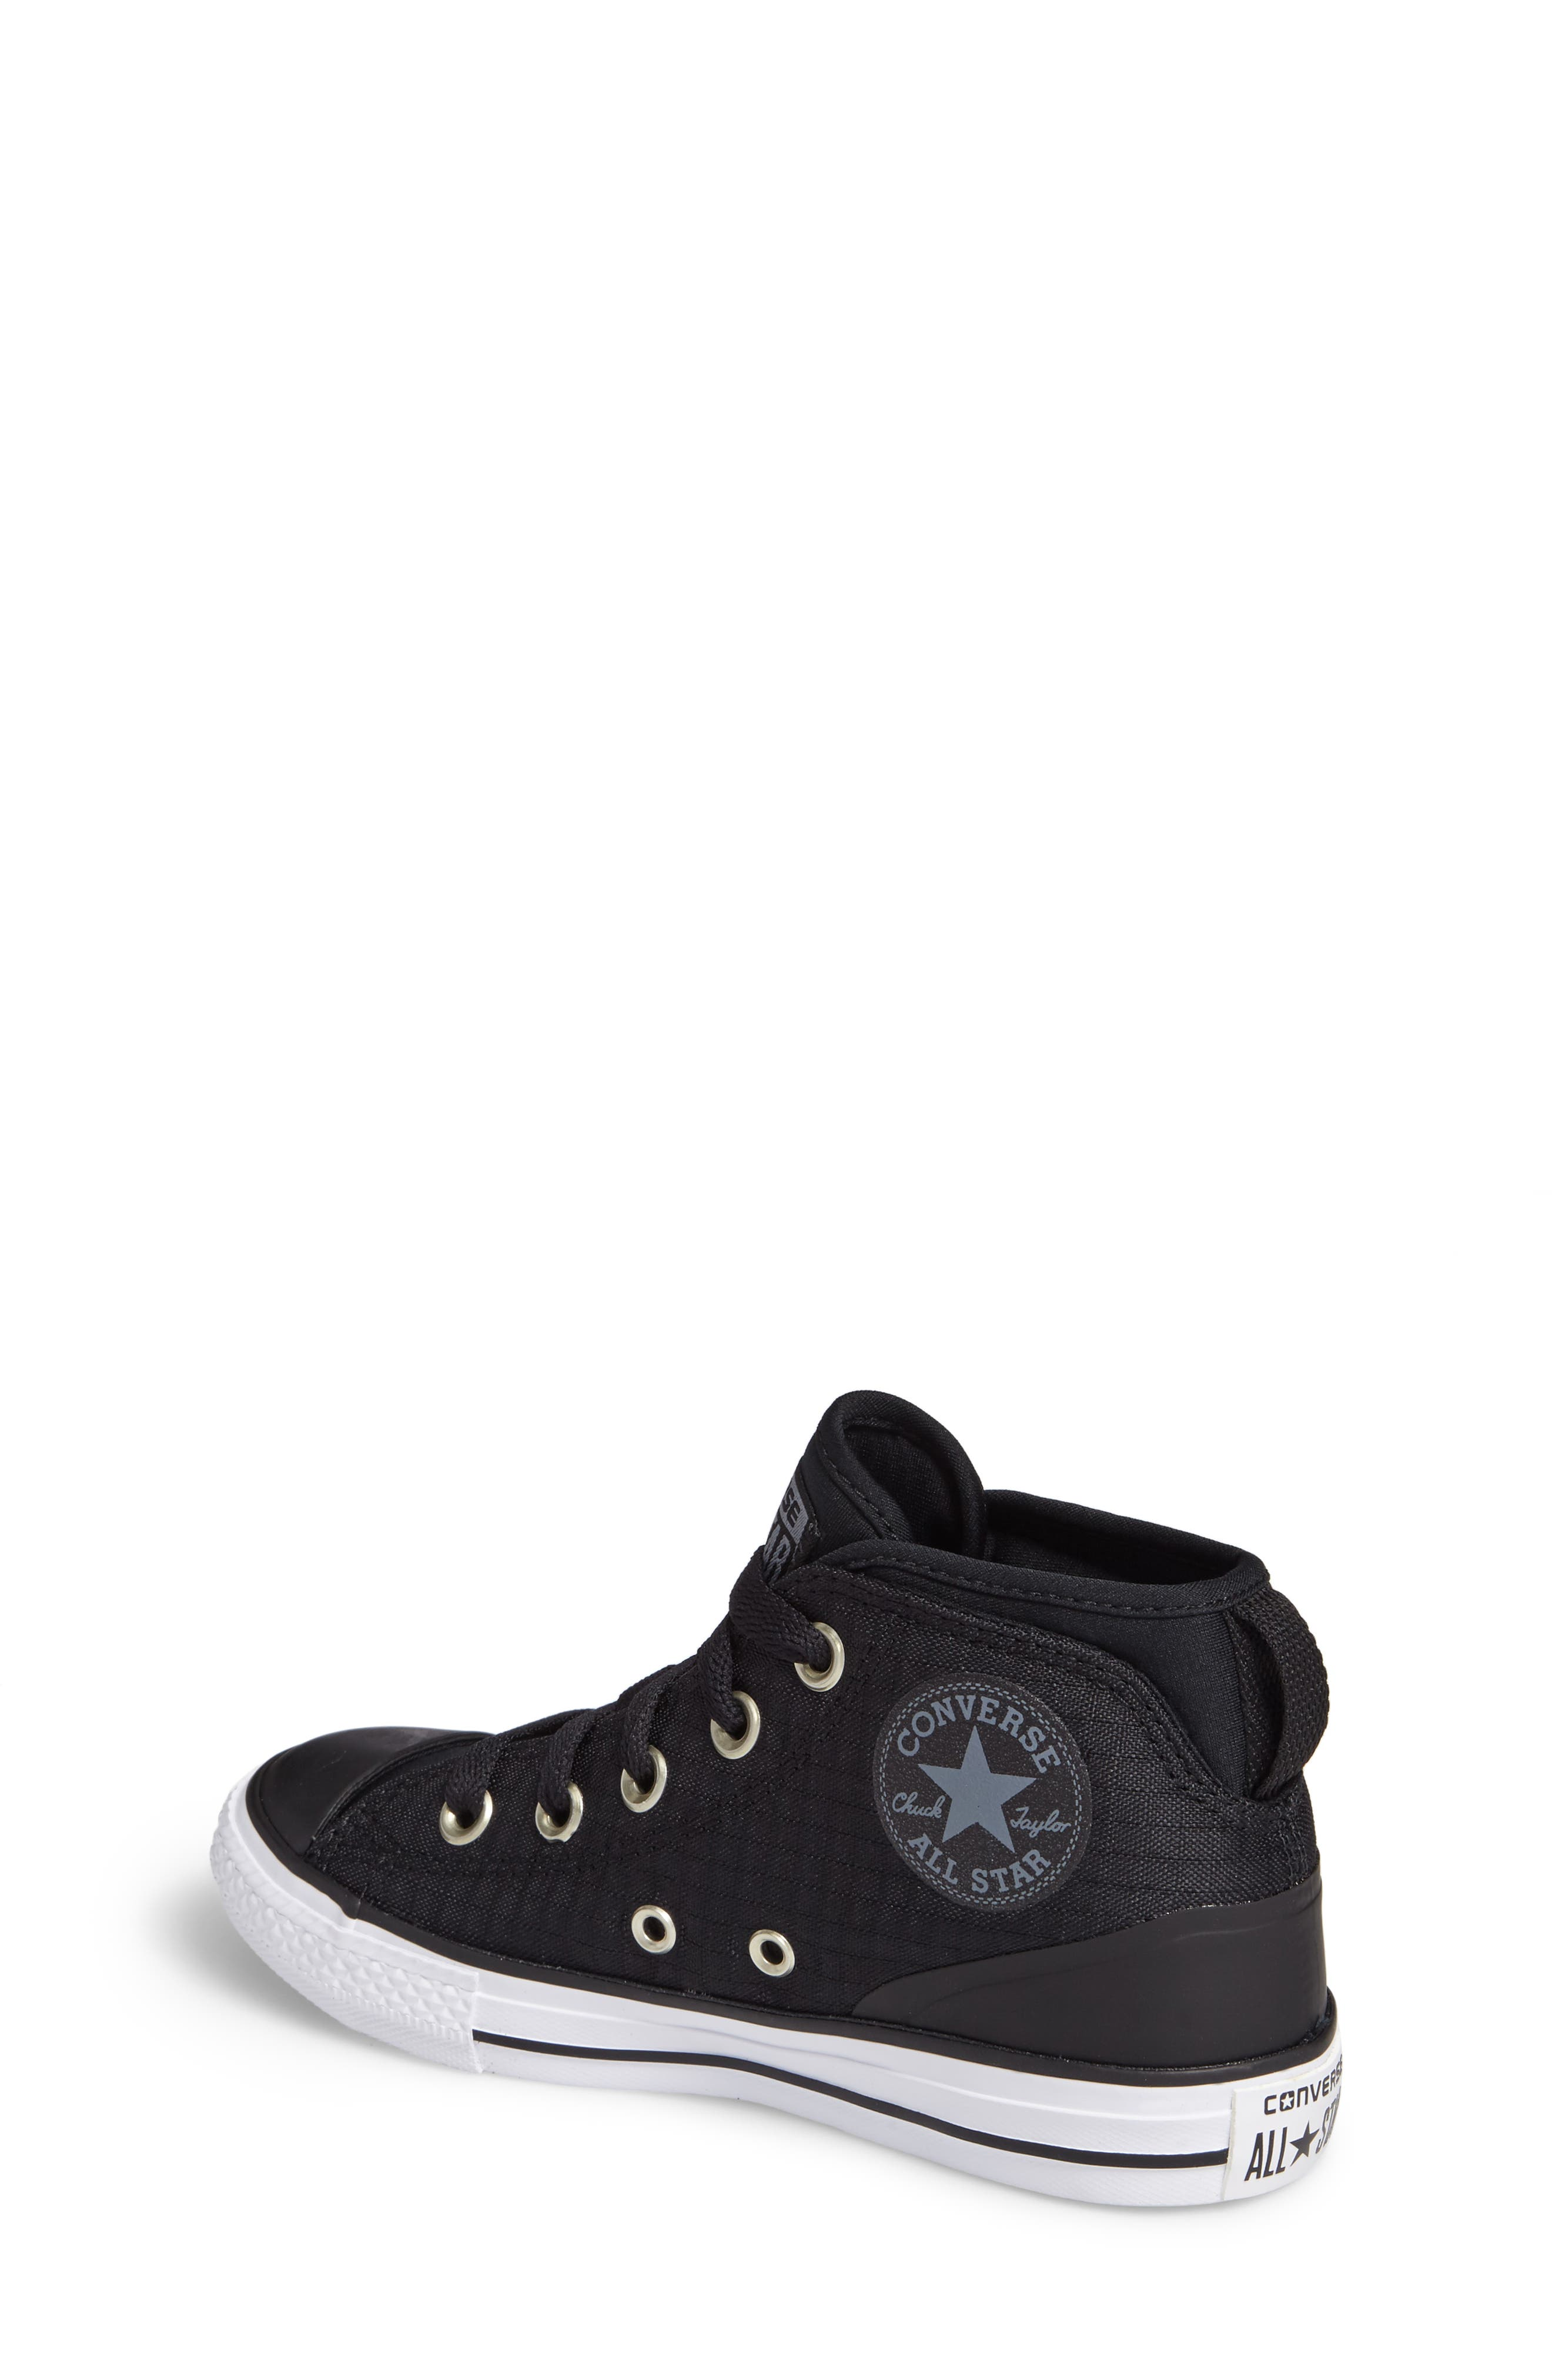 Alternate Image 2  - Converse Chuck Taylor® All Star® Syde Street High Top Sneaker (Toddler, Little Kid & Big Kid)